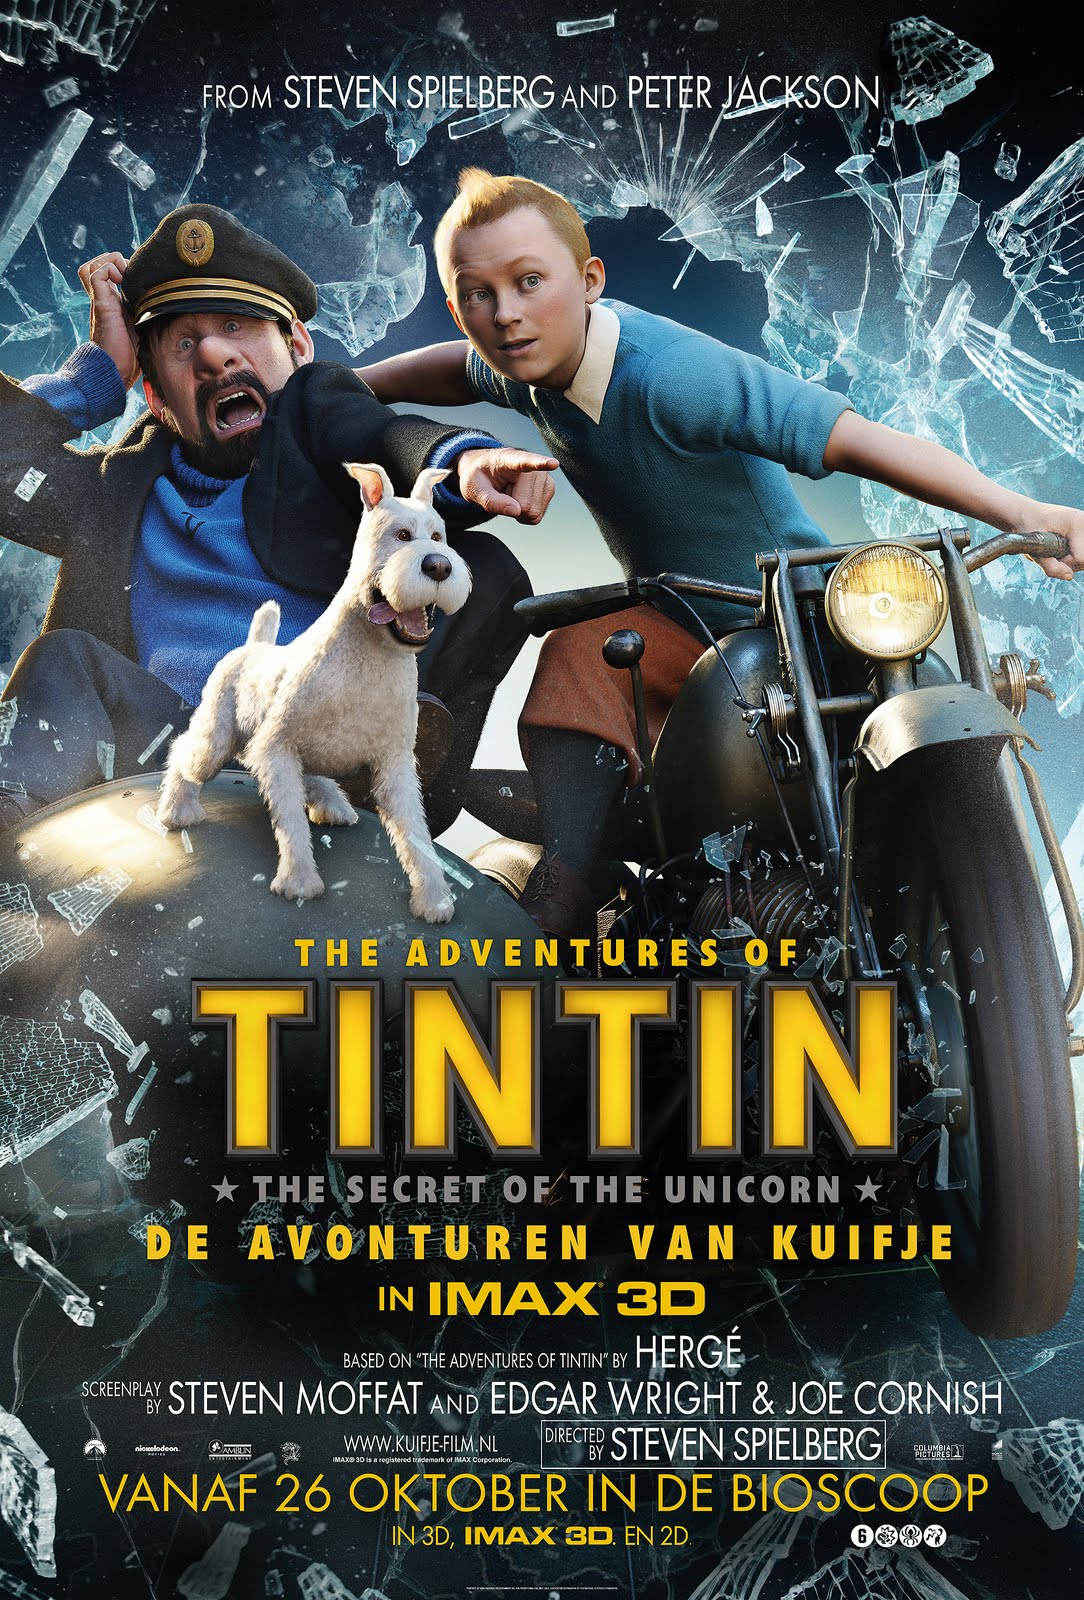 Movies: Posters of The Adventures of Tintin (2011)